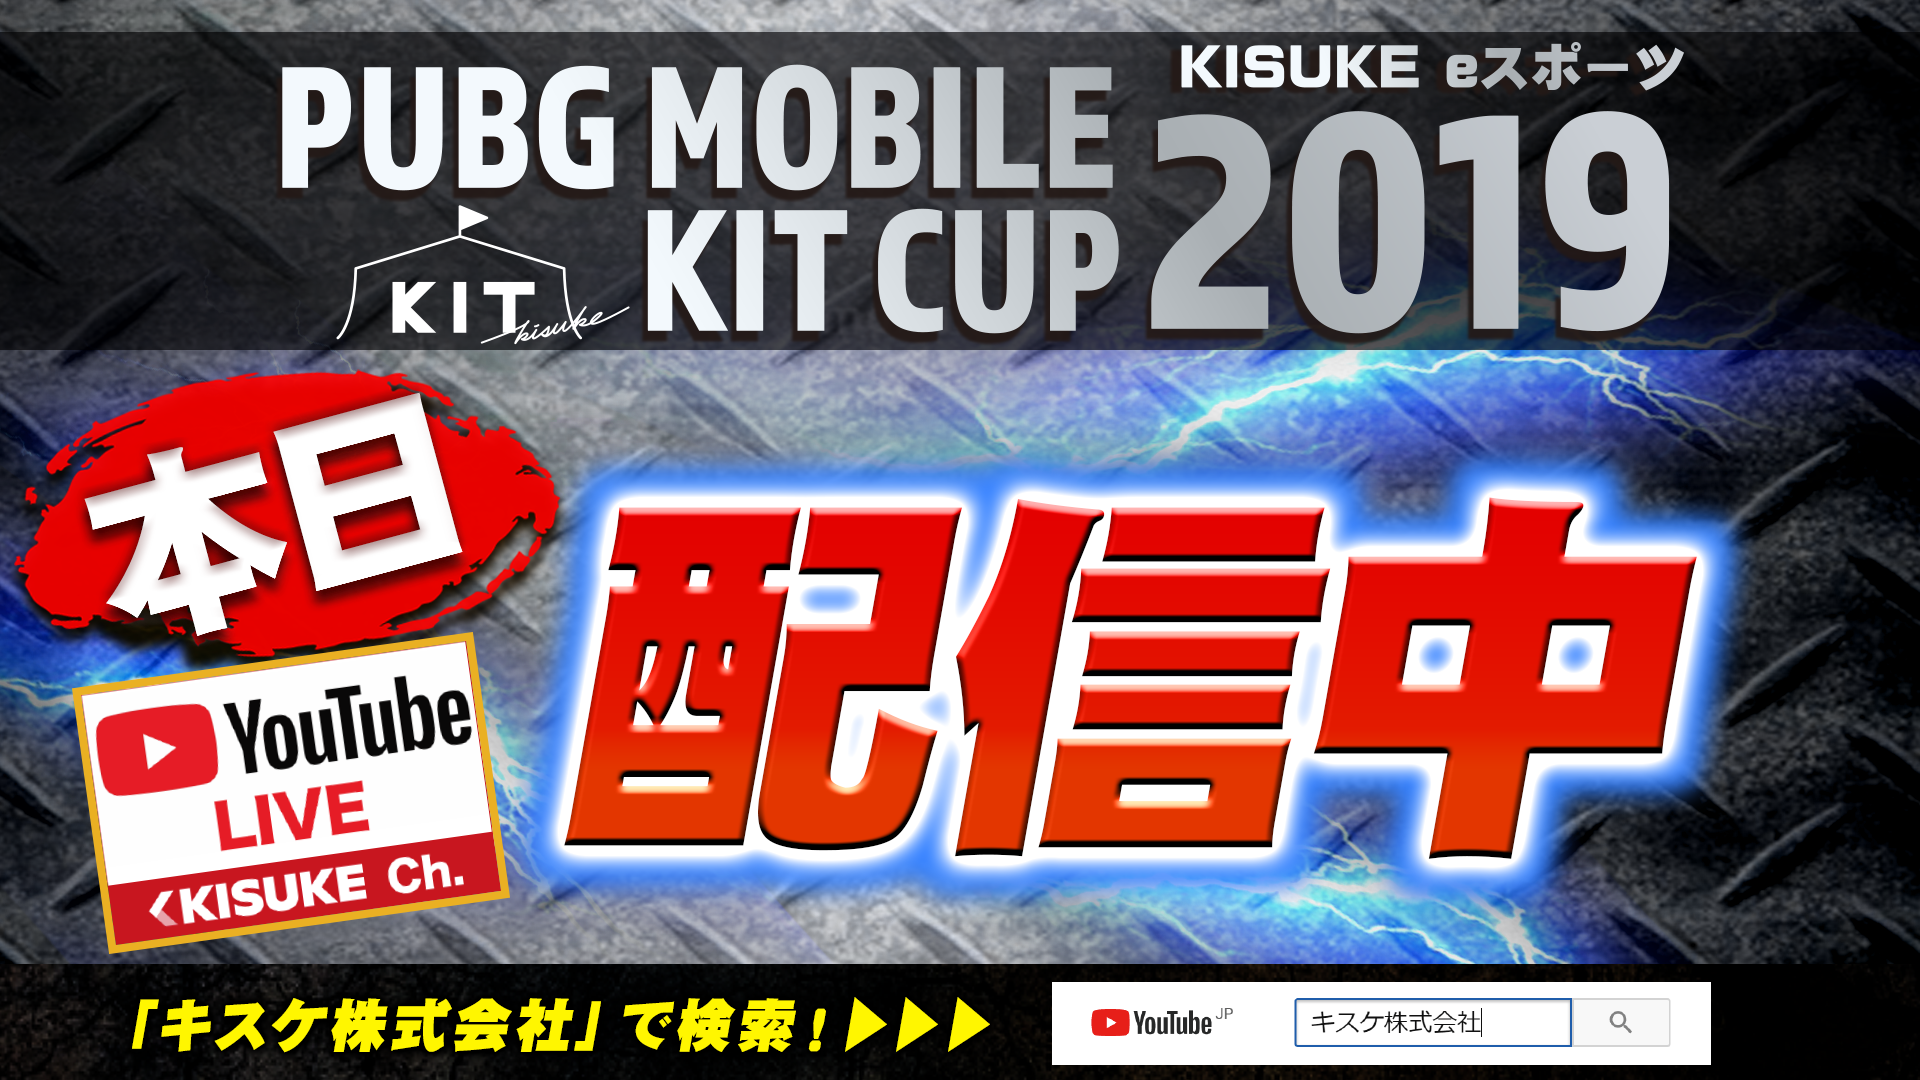 PUBG MOBILE KIT CUP、Youtube LIVE配信映像!